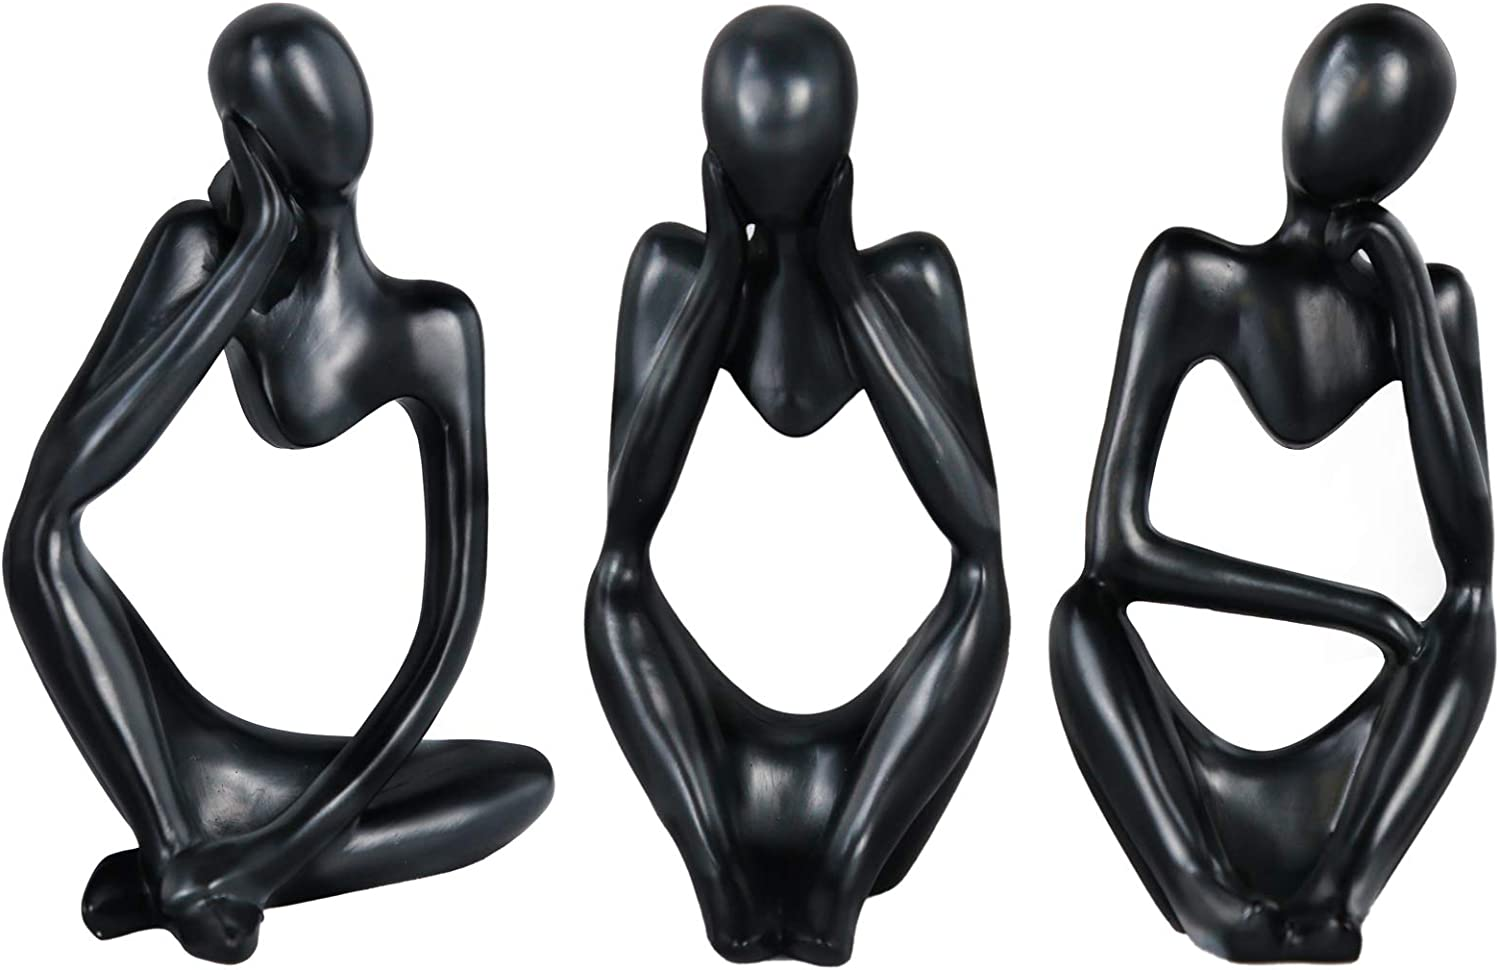 Lzttyee The Thinker Statue Set Mini Abstract Resin Thinker Statue for Modern Home Office Decor 3Pcs (Black)